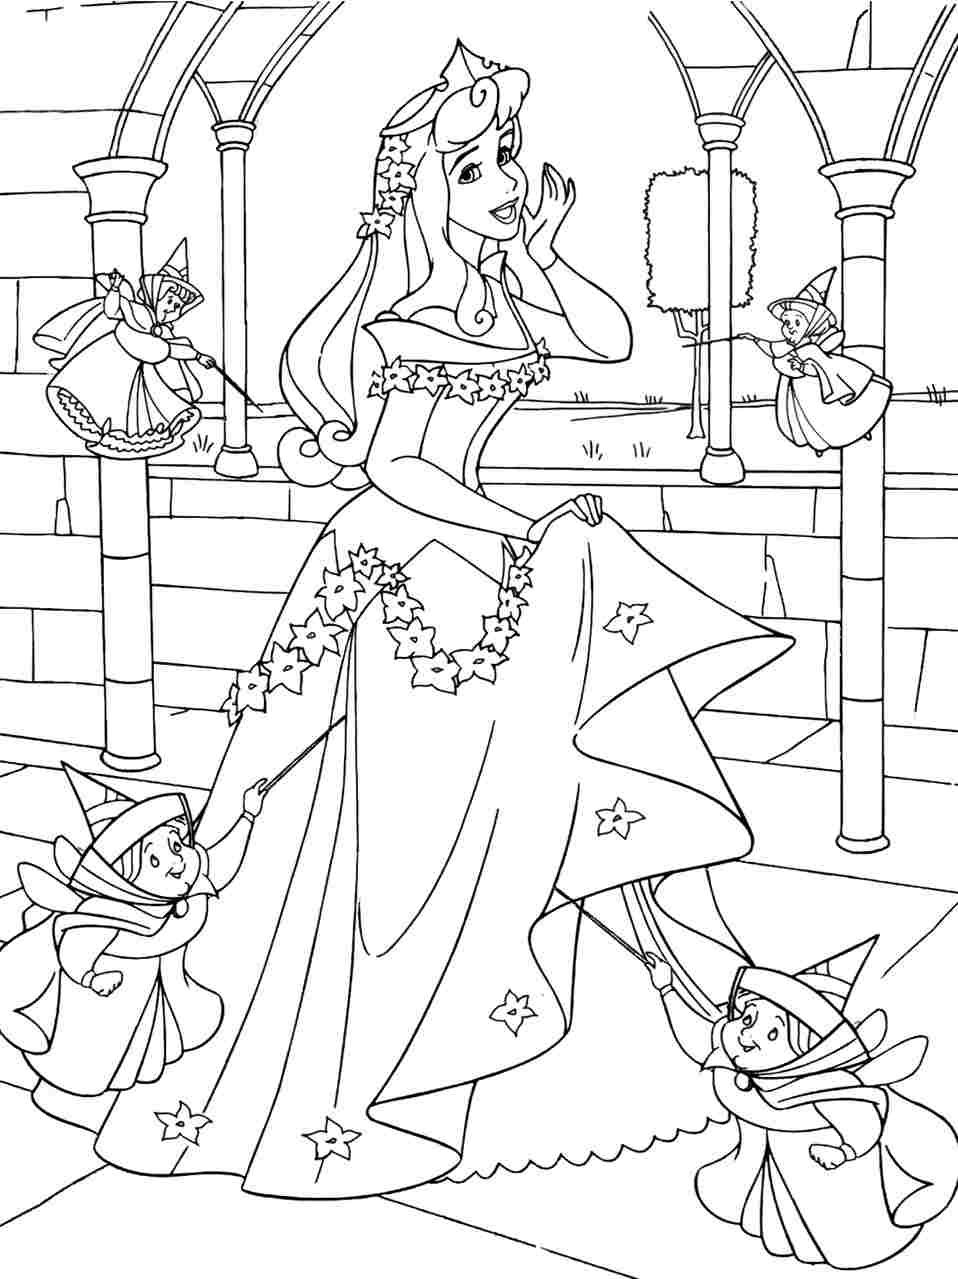 disney princess sleeping beauty aurora colouring sheets printable free for preschool 54967